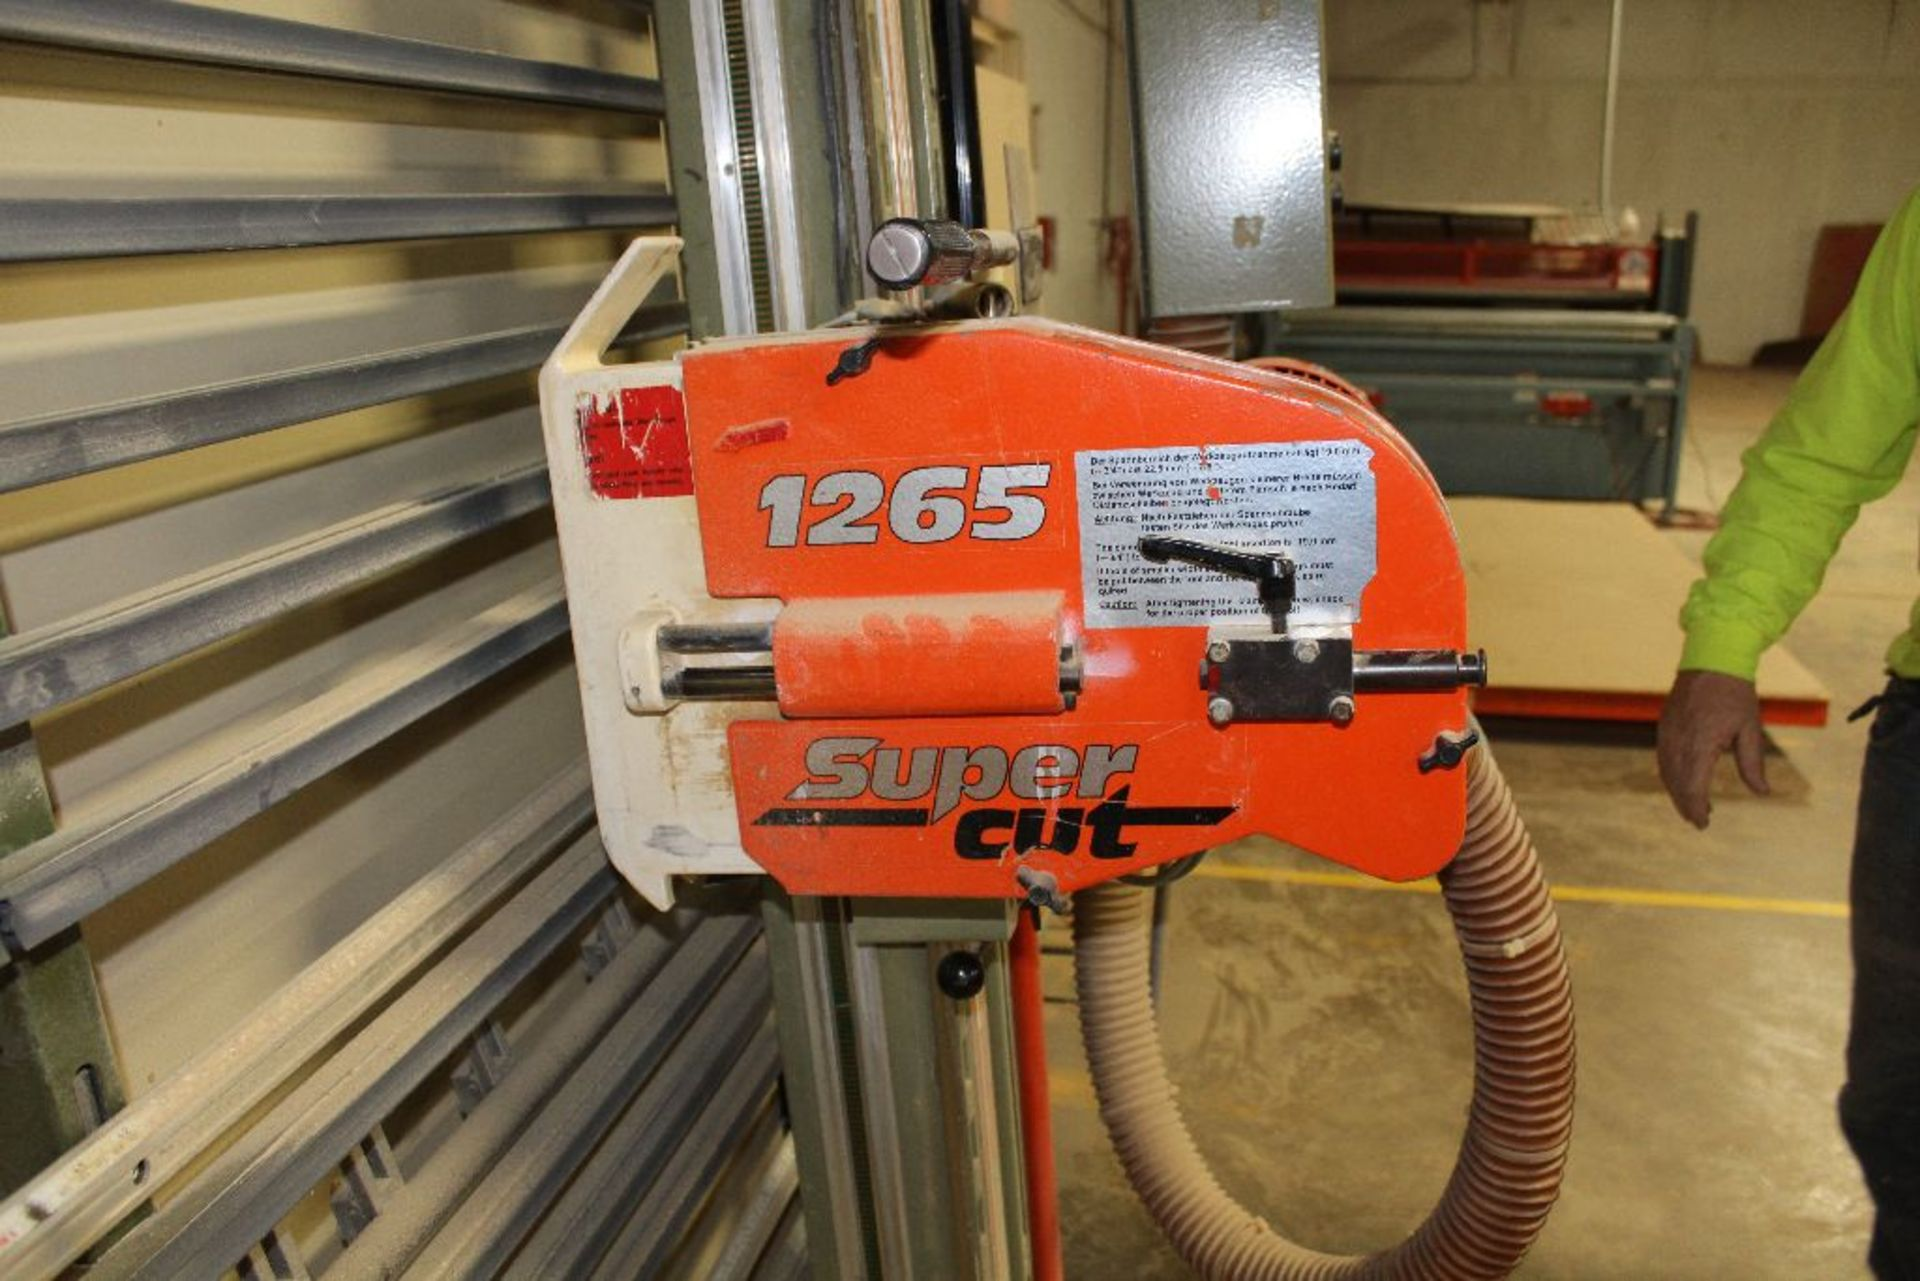 Lot 012 - Holzher panel saw, model 1265, sn 4.651, Super Cut, 3 hp.